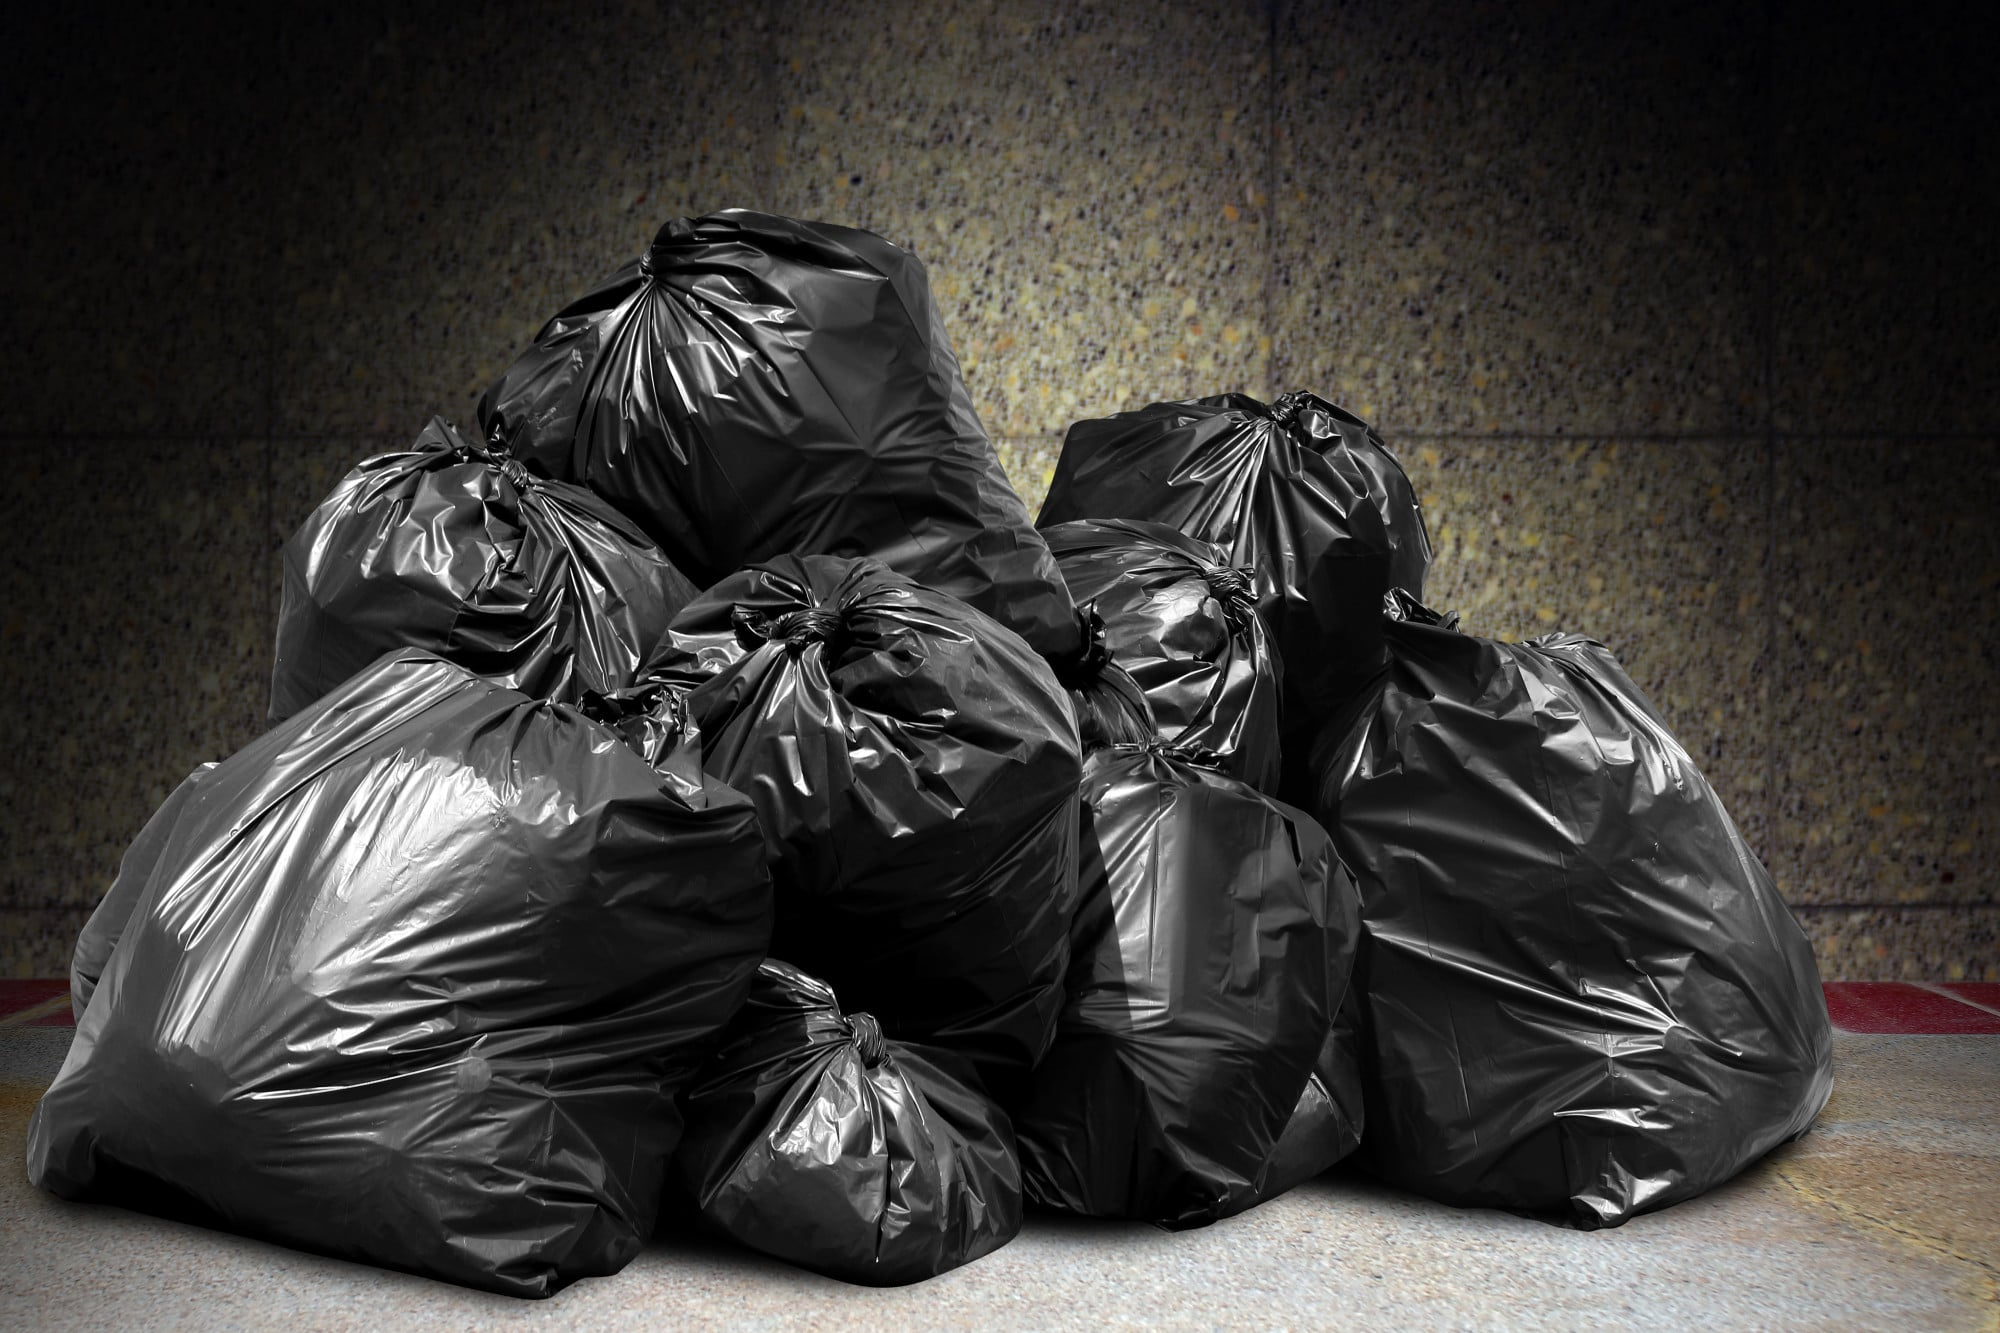 garbage is pile lots dump, many garbage plastic bags black waste at concrete wall, pollution from trash plastic waste garbage, bags bin of plastic waste, pile of garbage waste, lots of junk dump